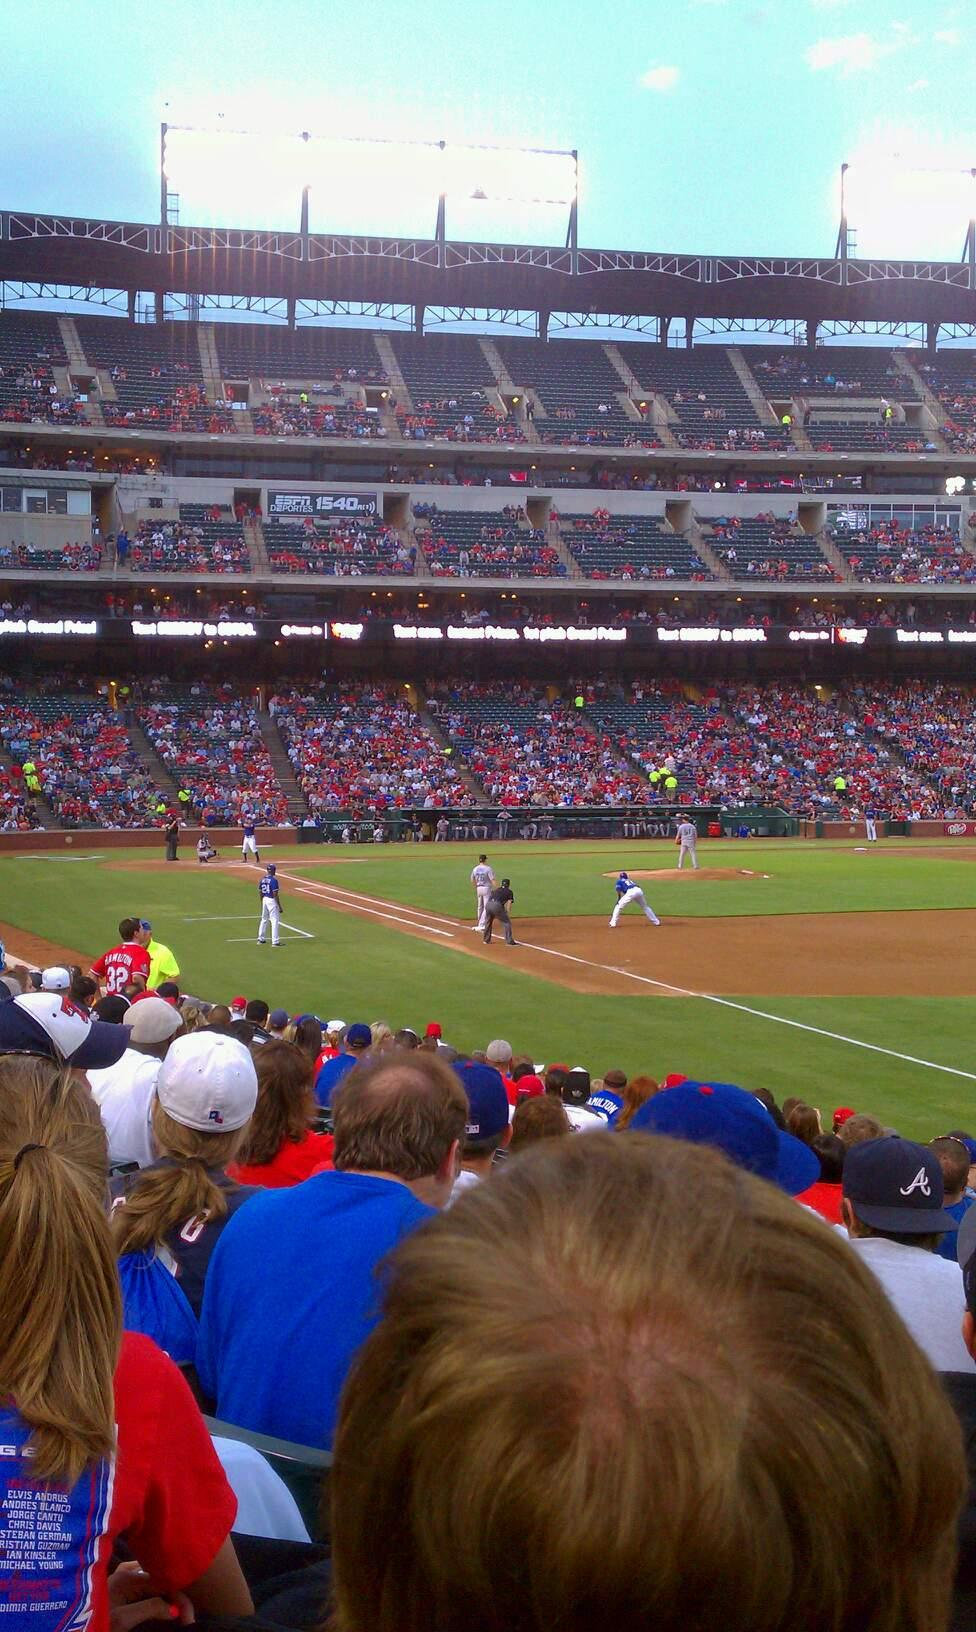 Globe Life Park in Arlington Section 38 Row 14 Seat 14